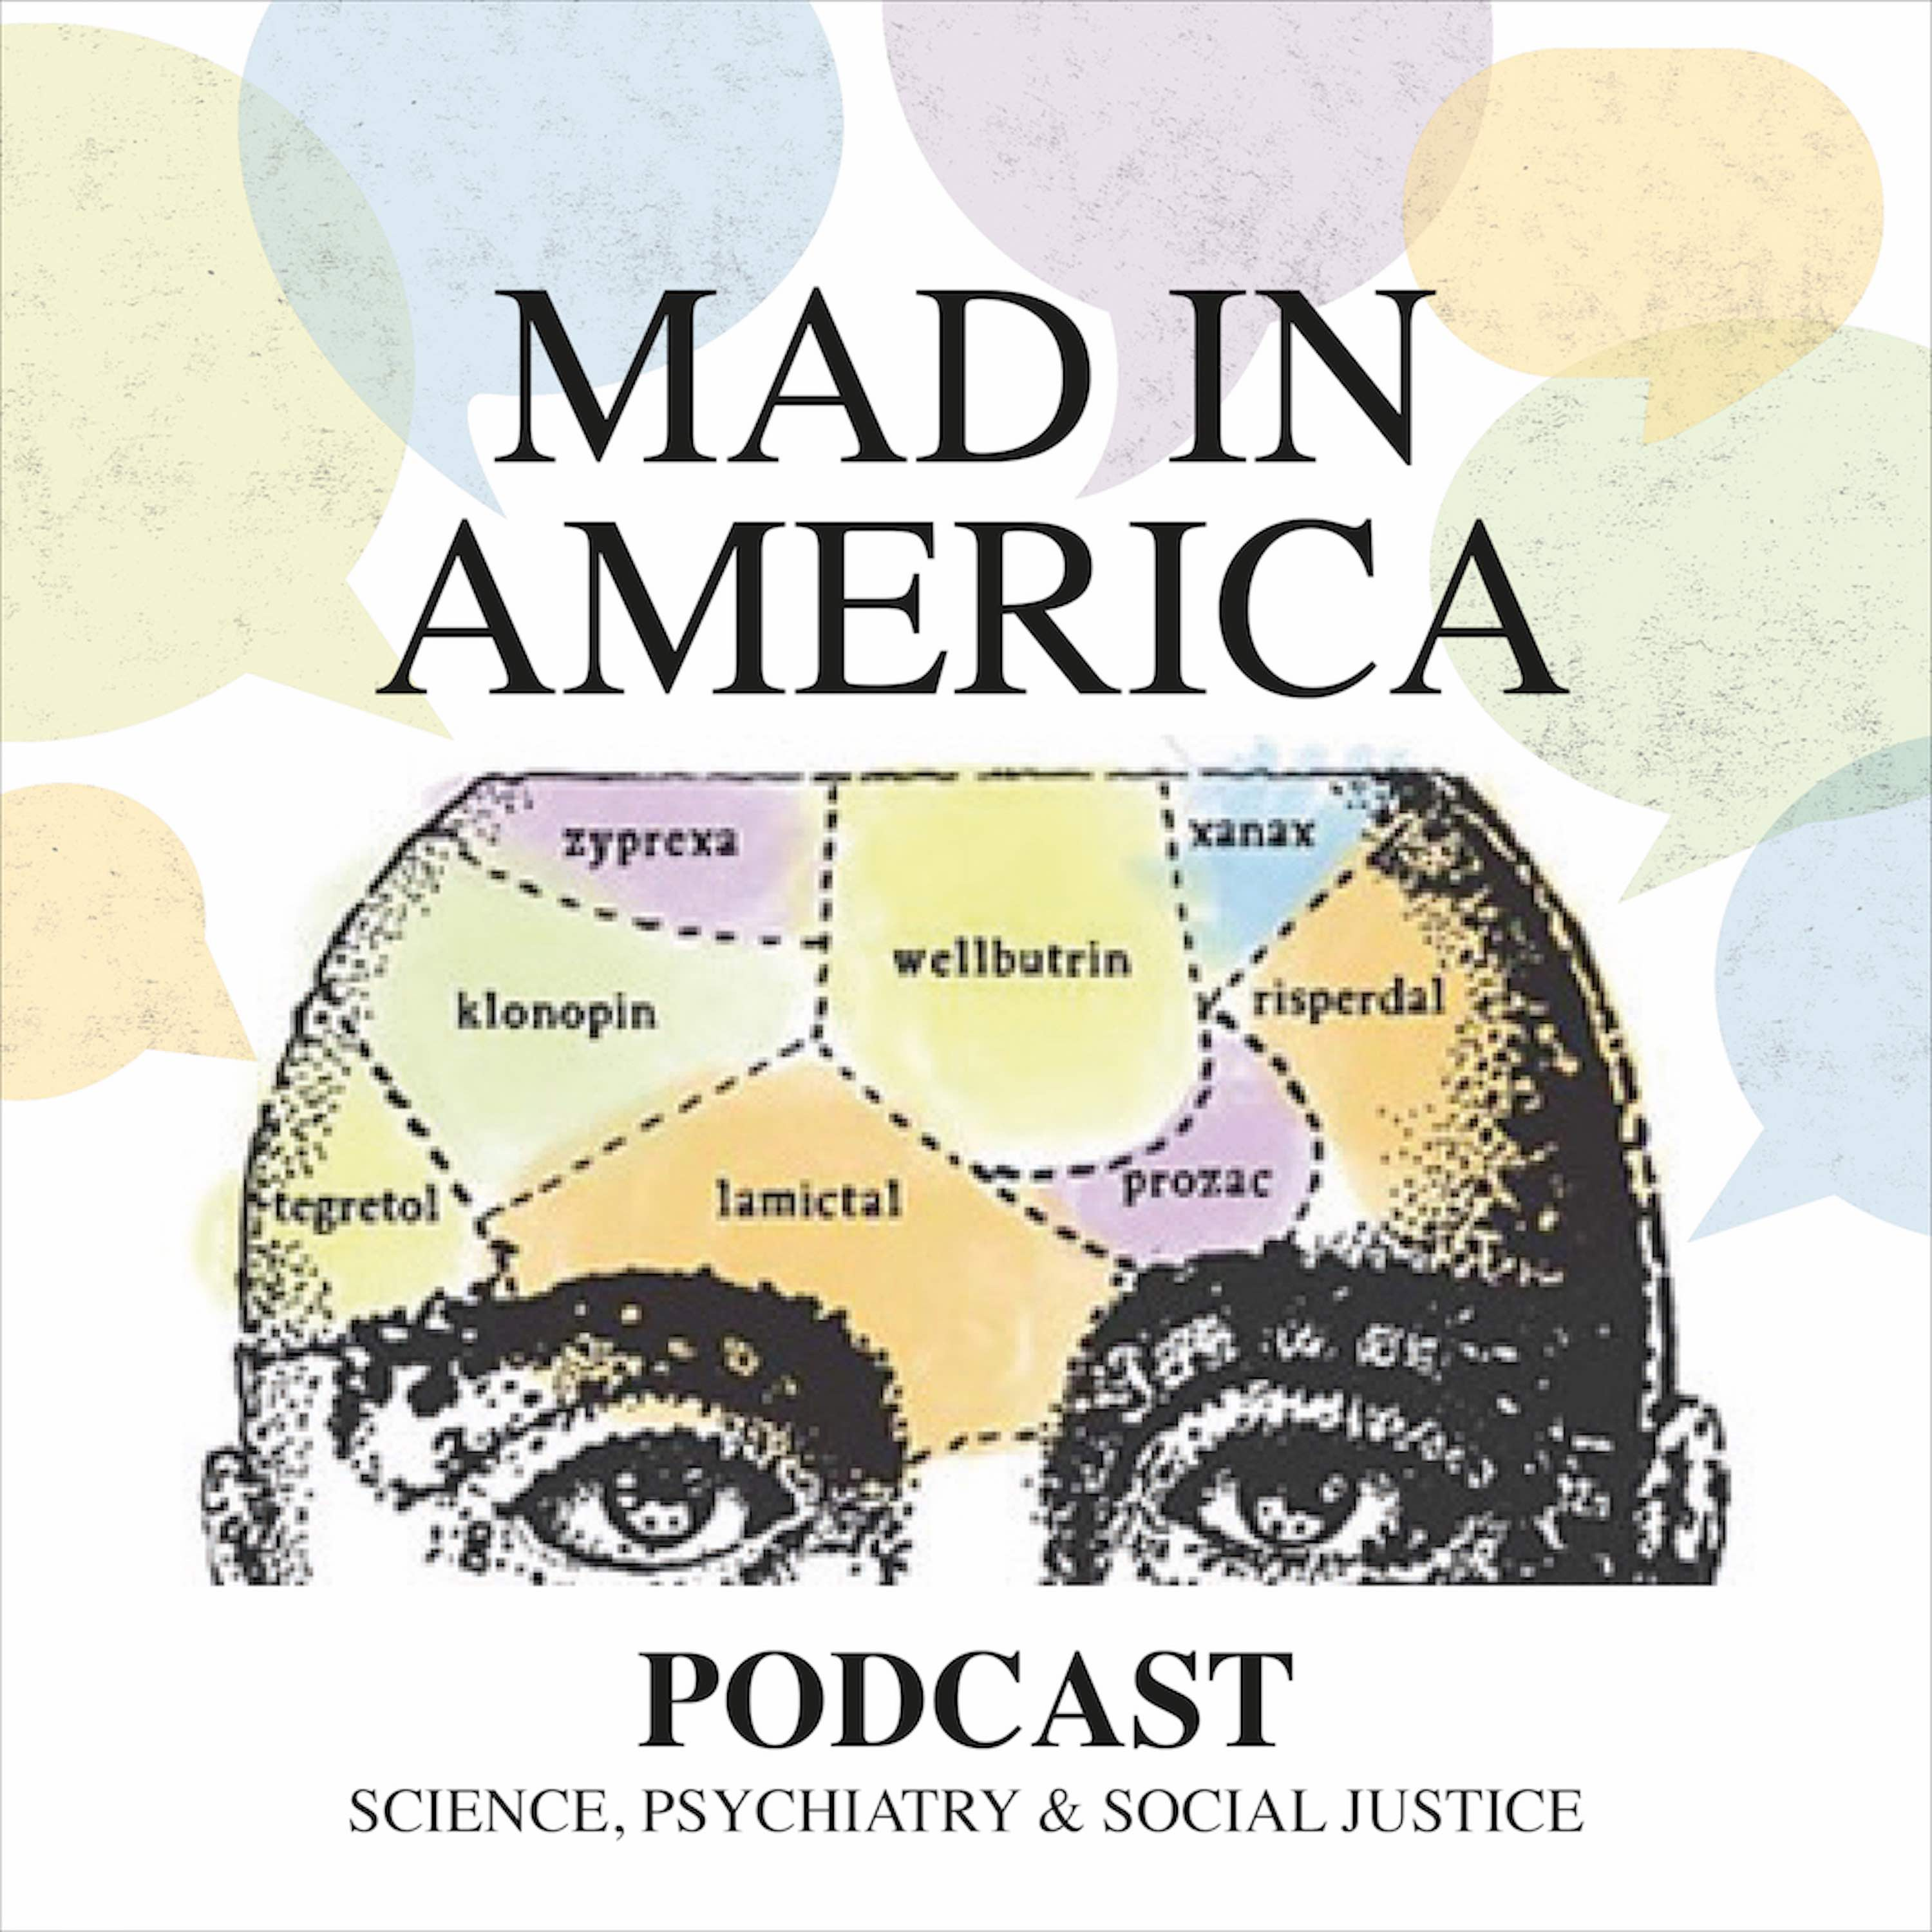 Mad in America: Rethinking Mental Health - Mark Horowitz - Peer-Support Groups Were Right, Guidelines Were Wrong - Tapering Off Antidepressants